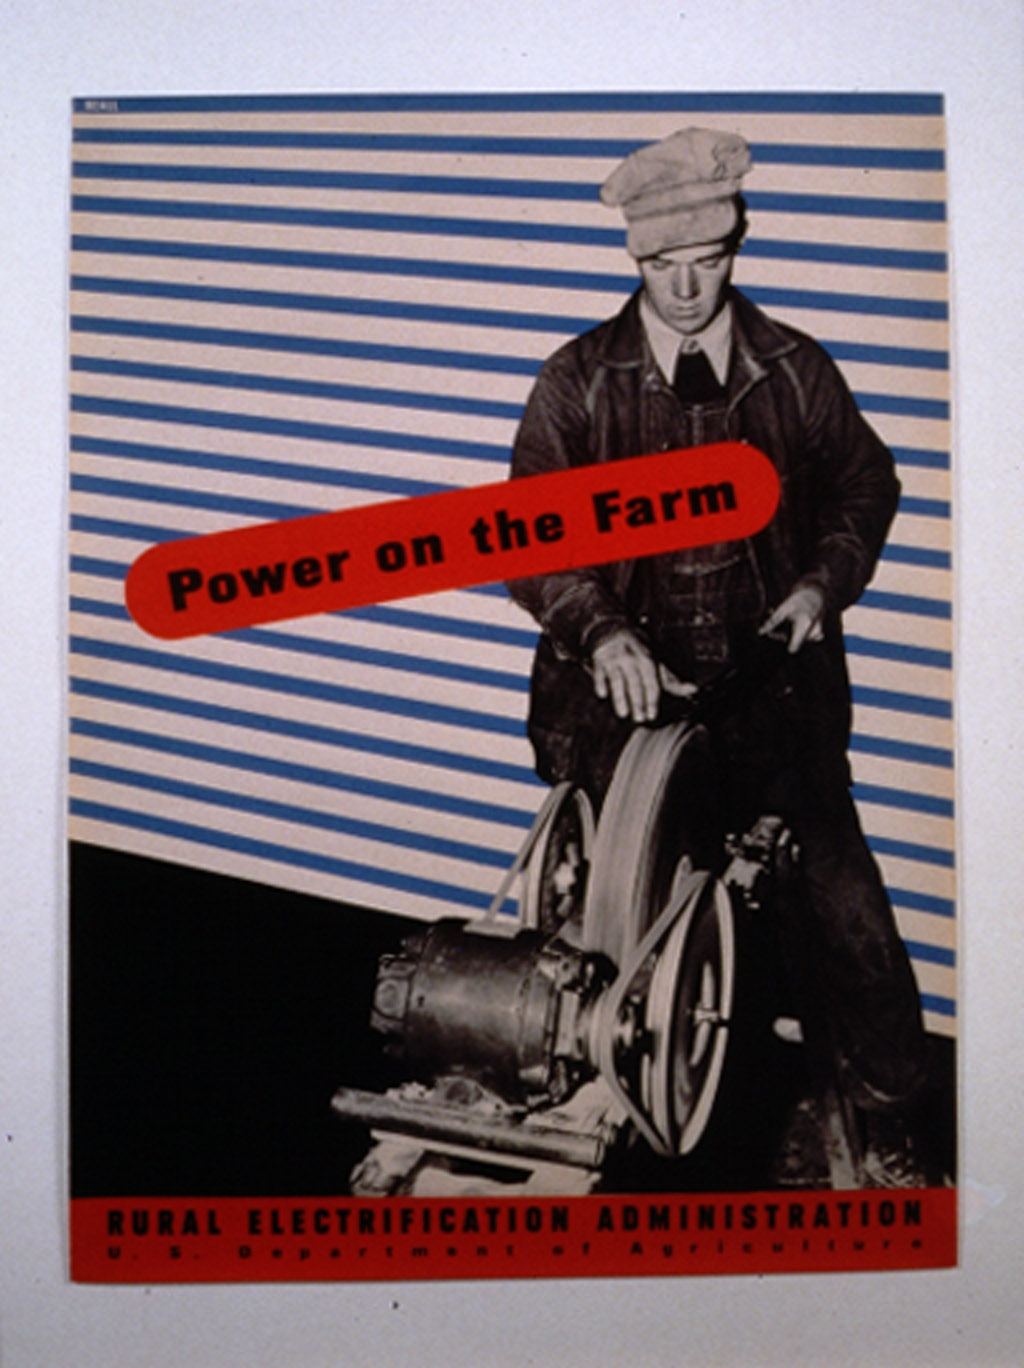 Power on the farm : Rural Electrification Administration